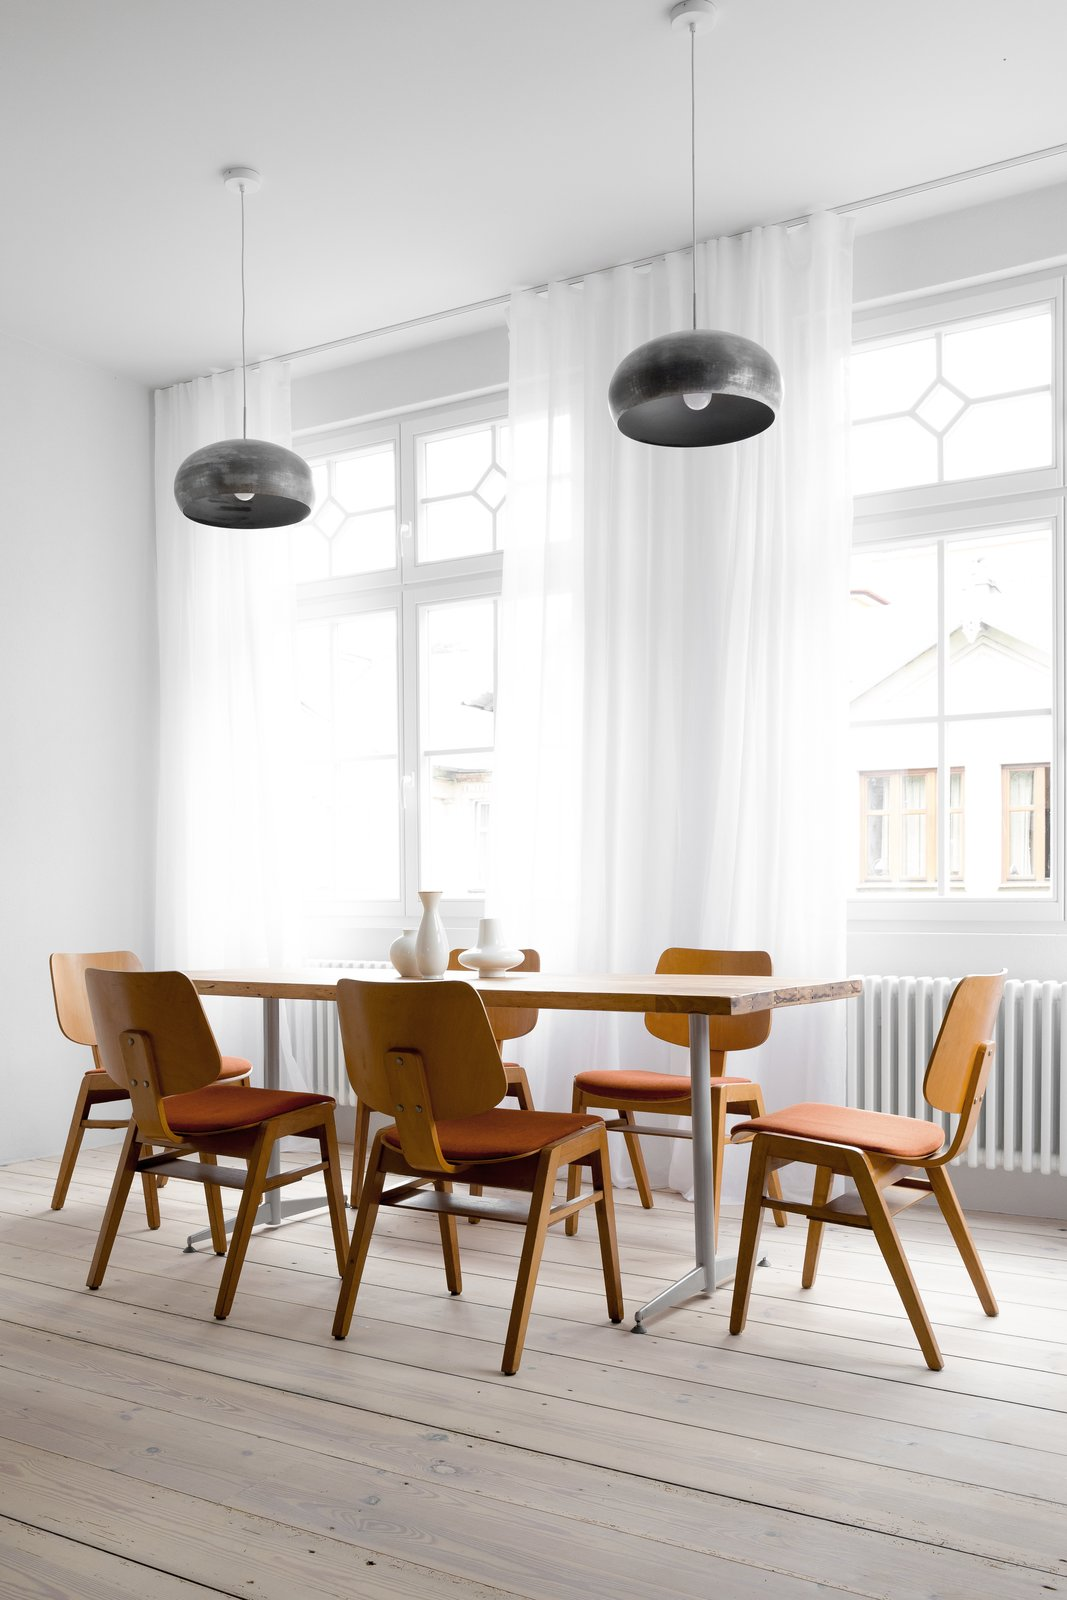 Dining Room, Chair, Table, Pendant Lighting, and Light Hardwood Floor  Best Photos from A Holiday Apartment in Poland With the Perfect Mix of Vintage and Custom Furniture